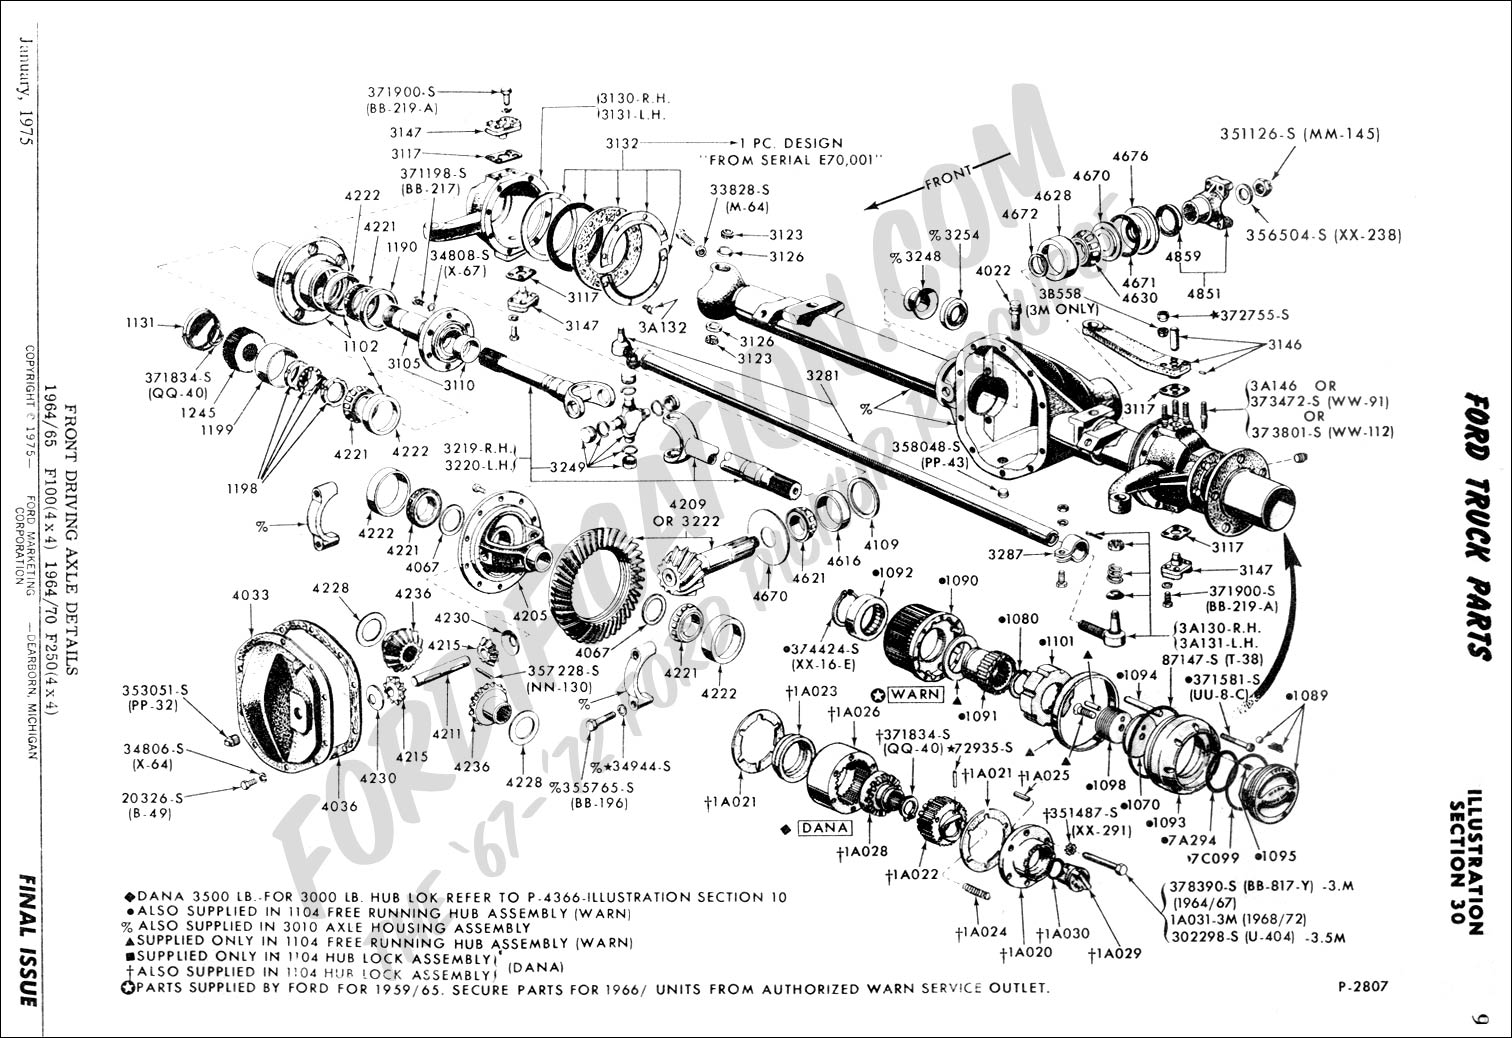 2000 Ford F250 Front End Diagram Diy Enthusiasts Wiring Diagrams 1999 Truck Technical Drawings And Schematics Section A Rh Fordification Com Axle 2003 4x4